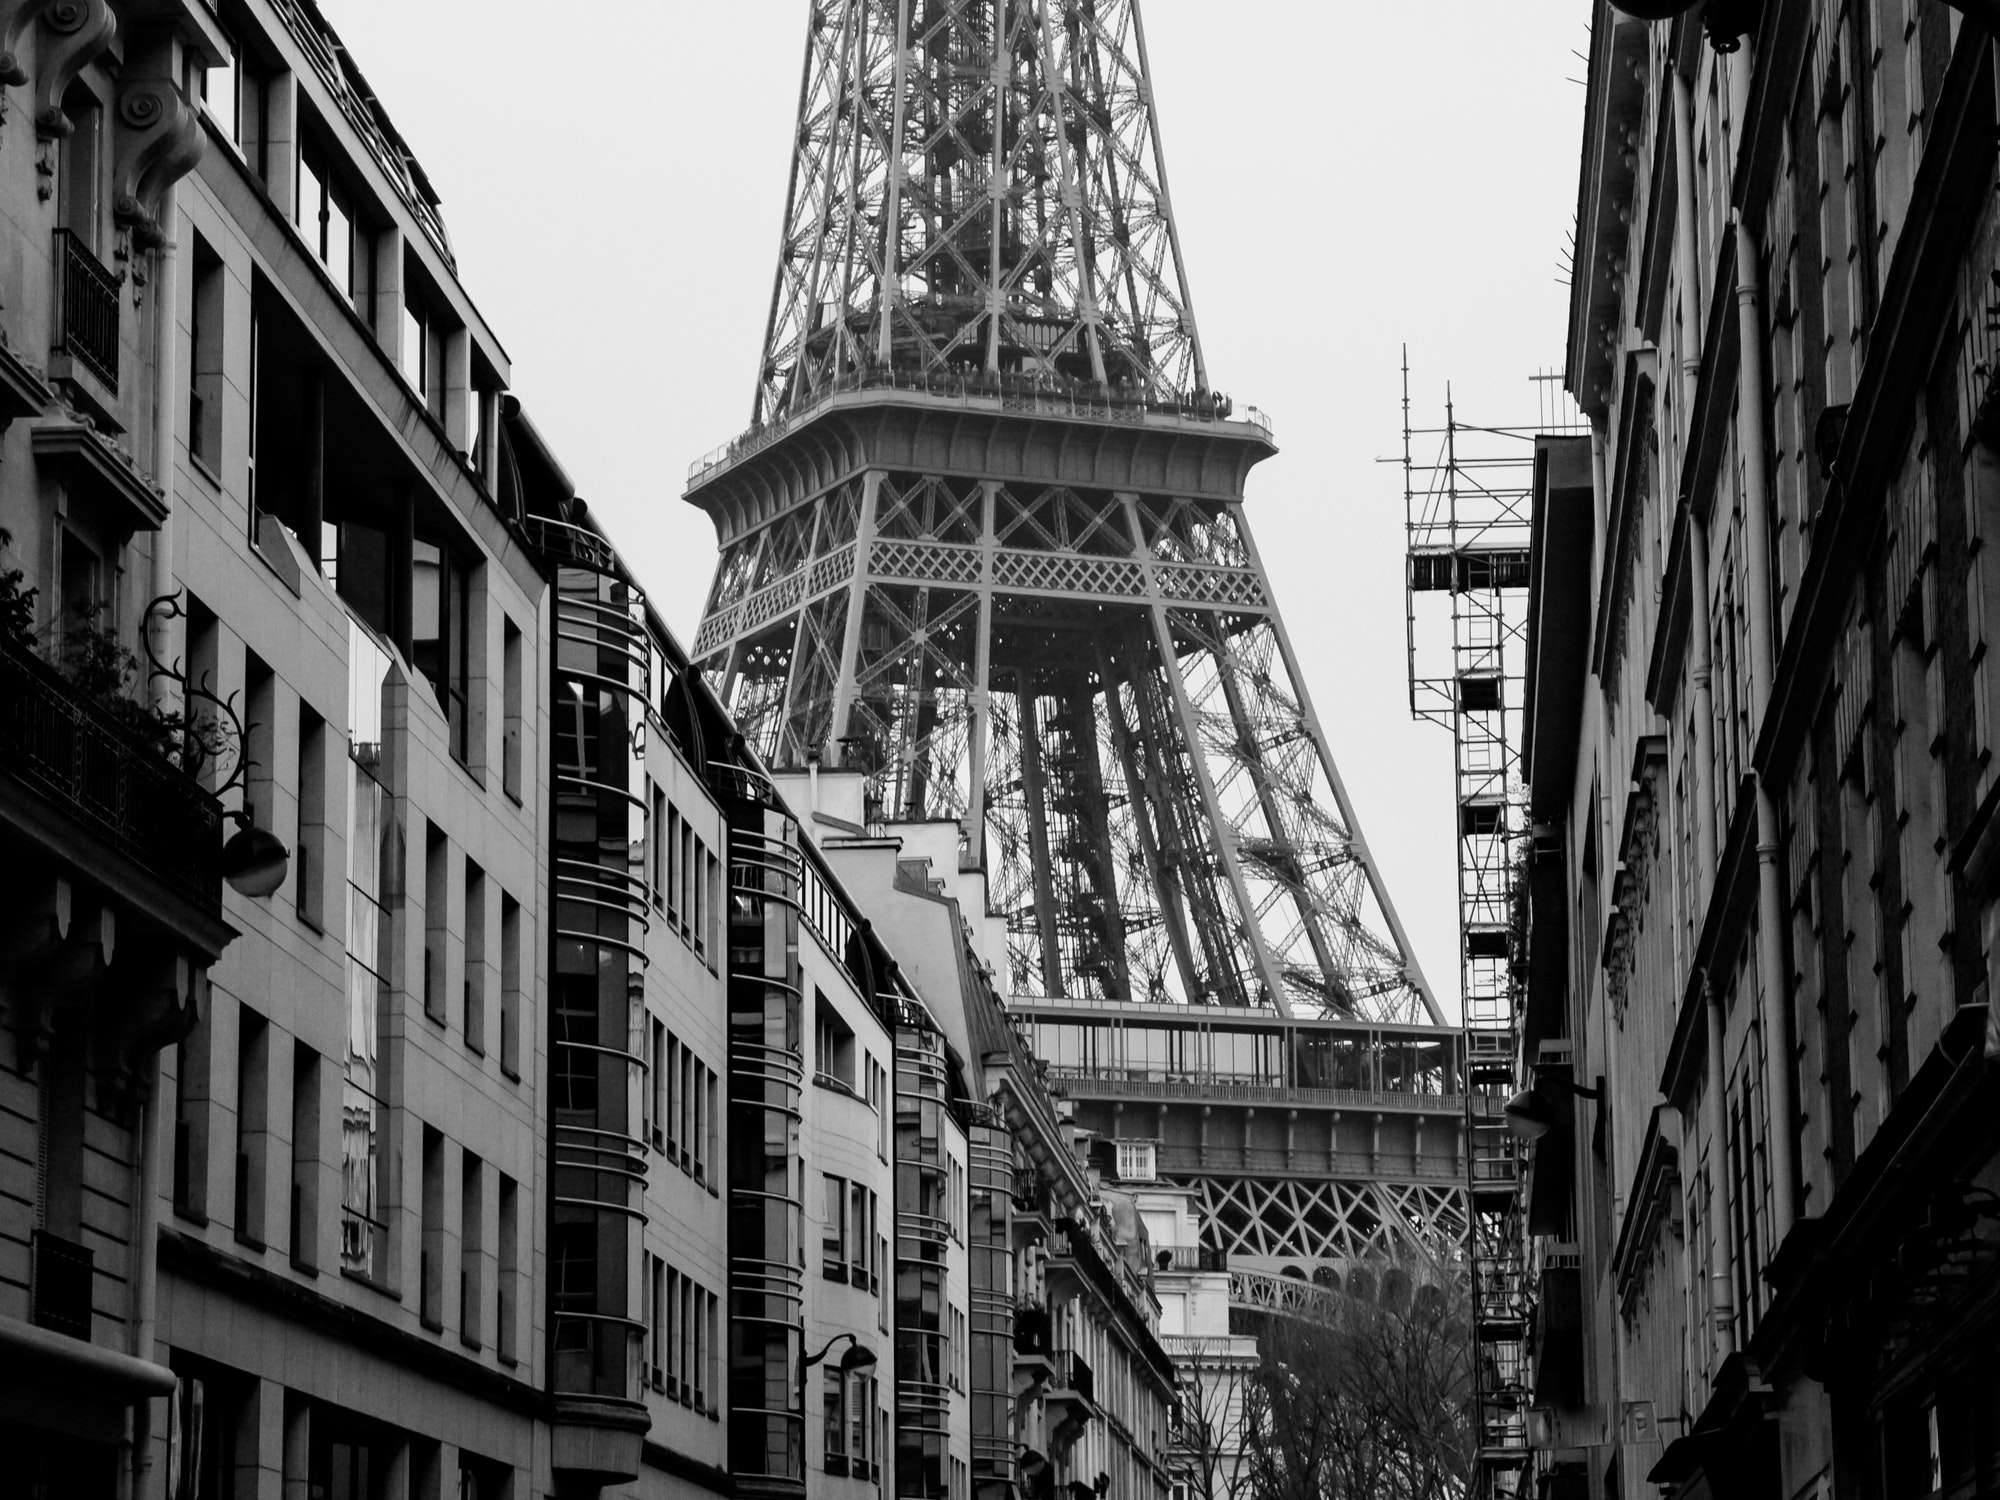 View toward the Eiffel Tower in France